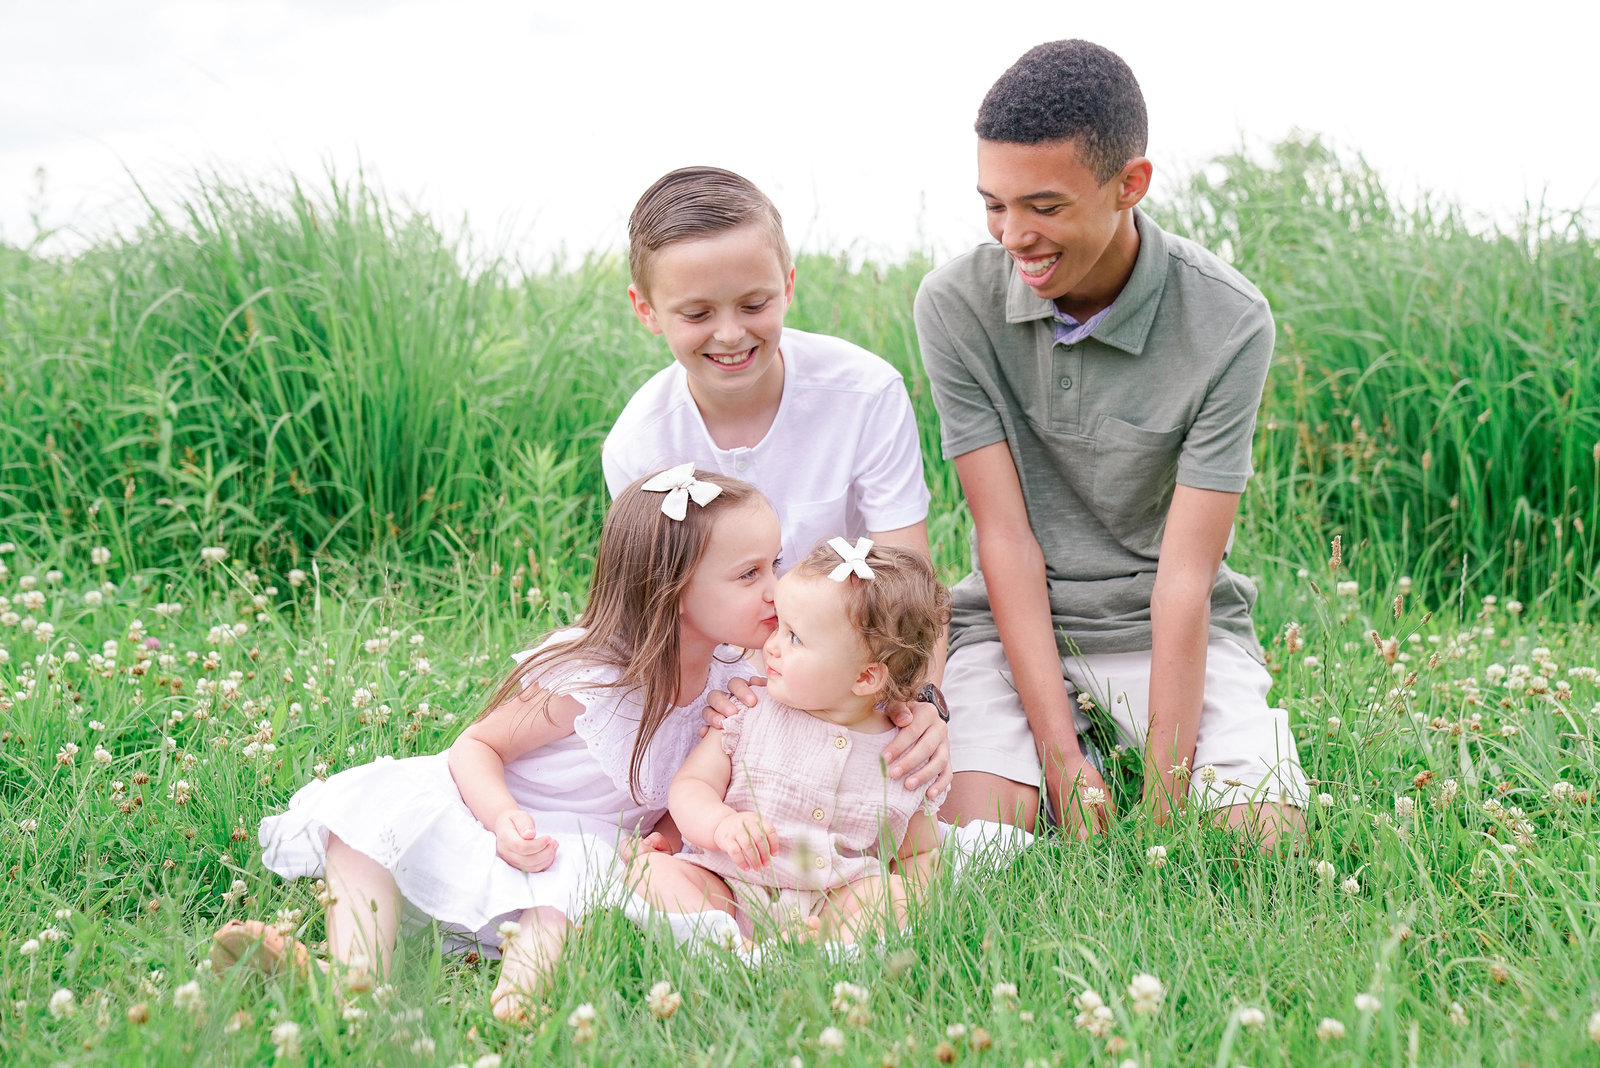 kalamazoo-family-session-outfits-8